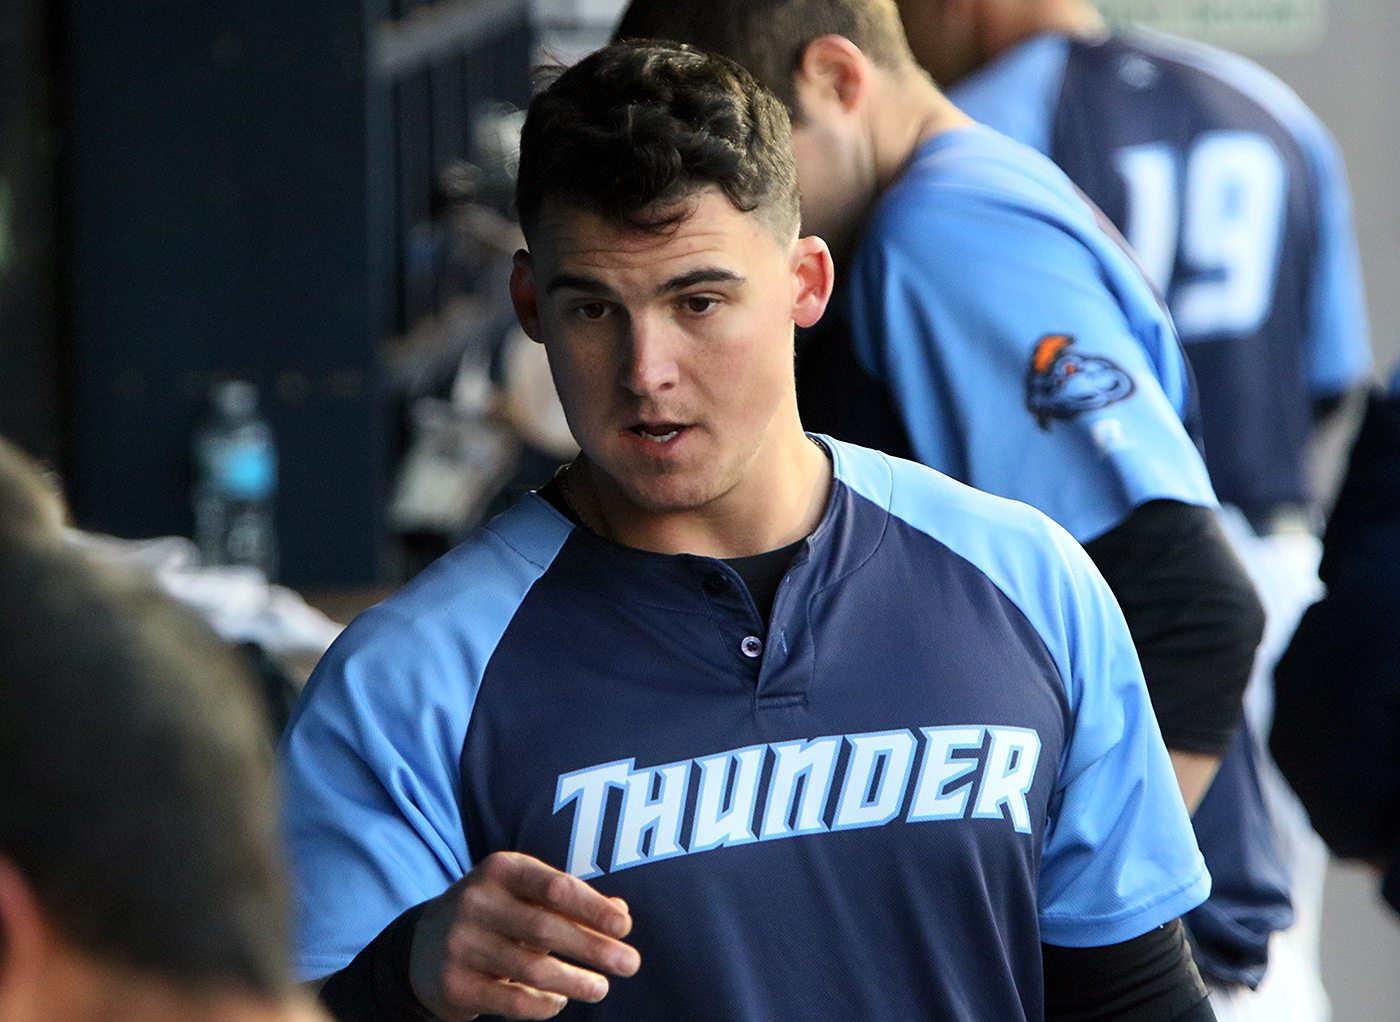 Trenton Thunder infielder Tyler Austin in the dugout during a game against the Portland Sea Dogs at Arm & Hammer Park in Trenton on Tuesday, April 12, 2016. Photo by Martin Griff